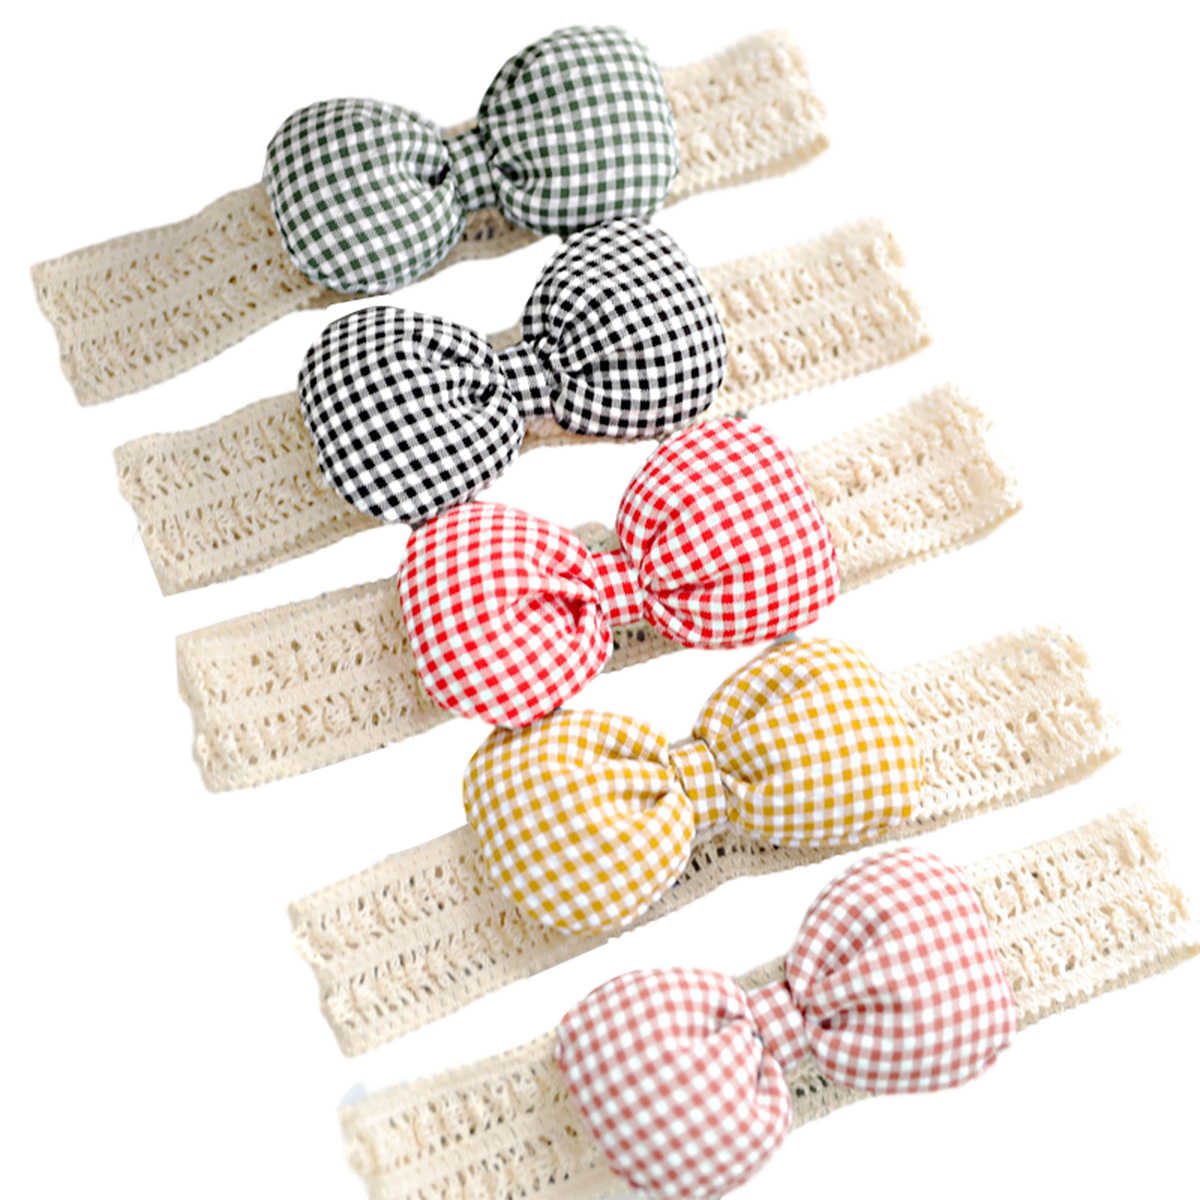 Pudcoco Newborn Baby Girls Headband Ribbon Elastic Baby Headdress Kids Hair Band Girl Bow Knot Plaid Check Headwear